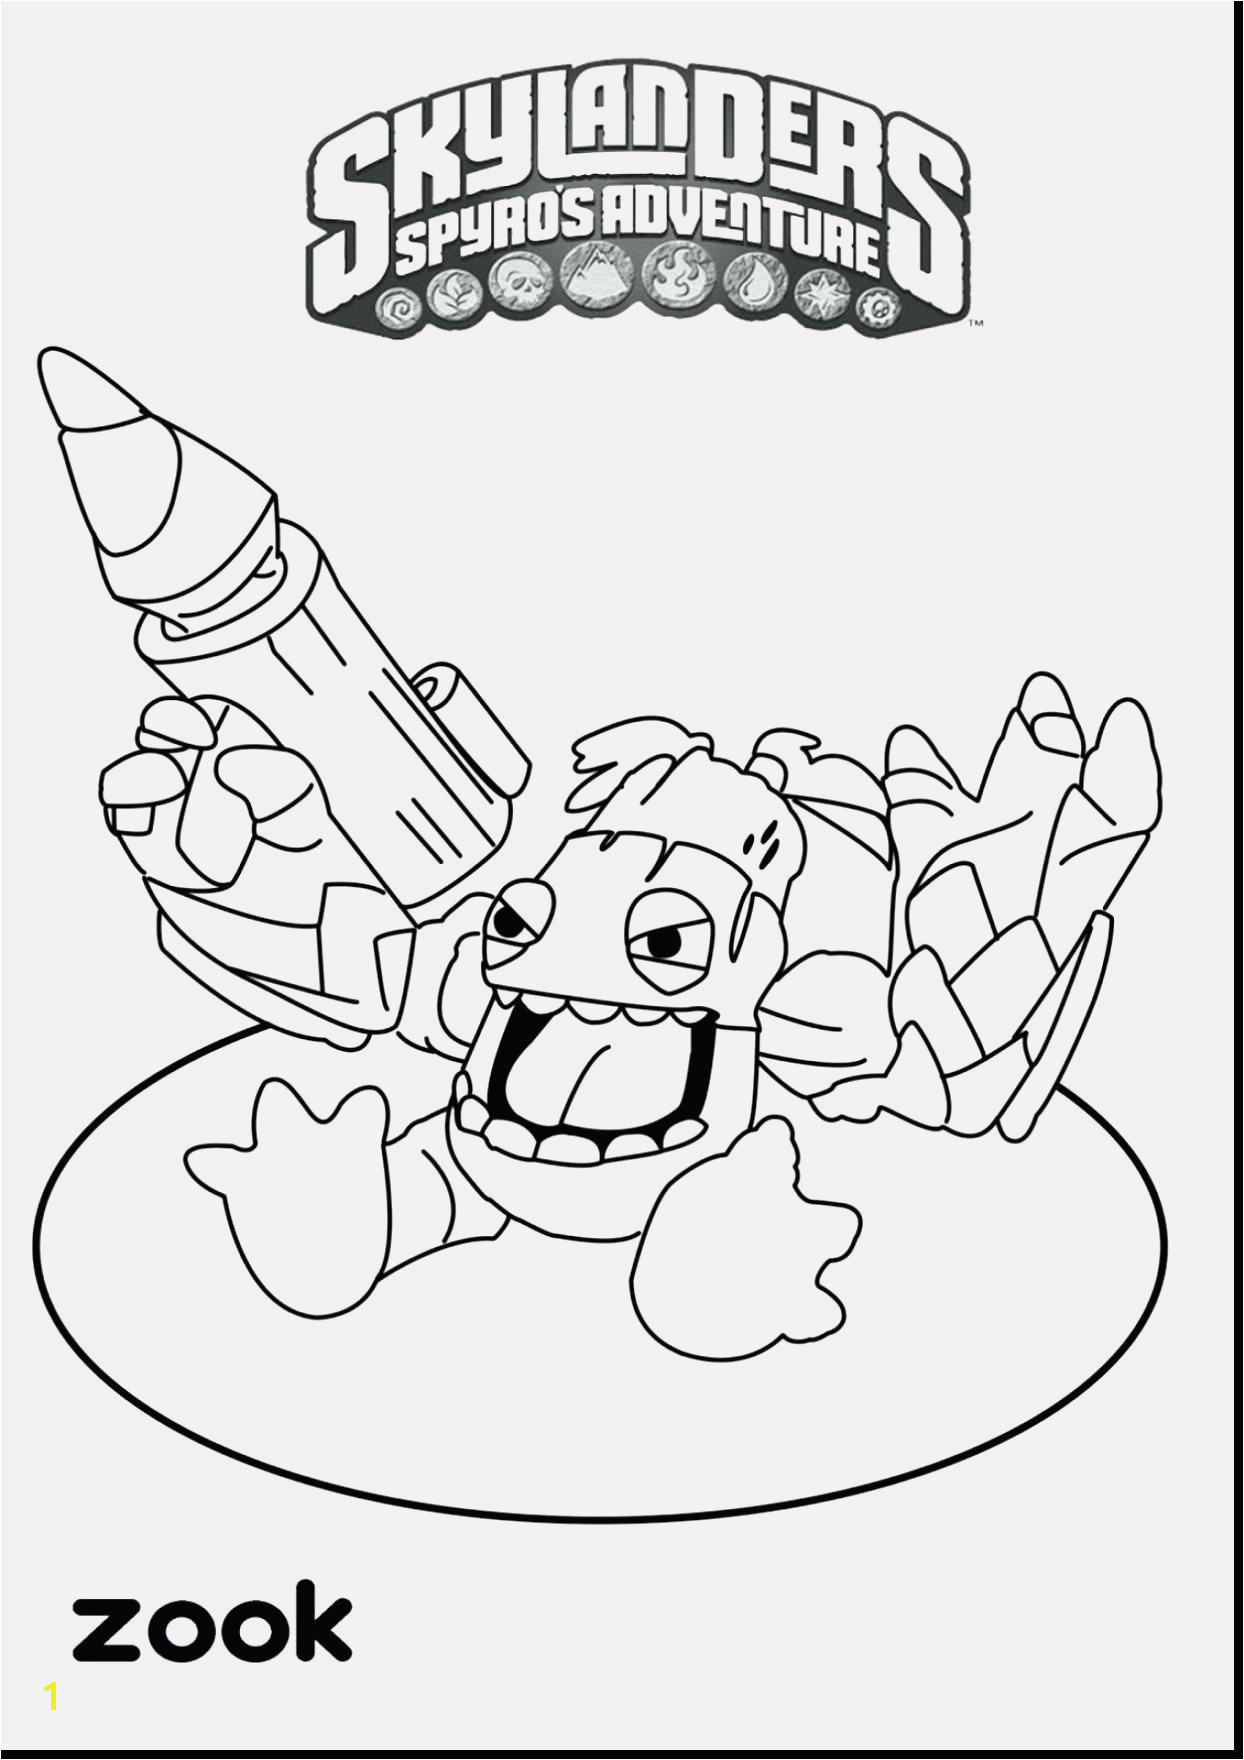 Cupcake Coloring Pages Free Printable 15 Luxury Cupcake Coloring Pages Cupcake Coloring Pages Free Printable